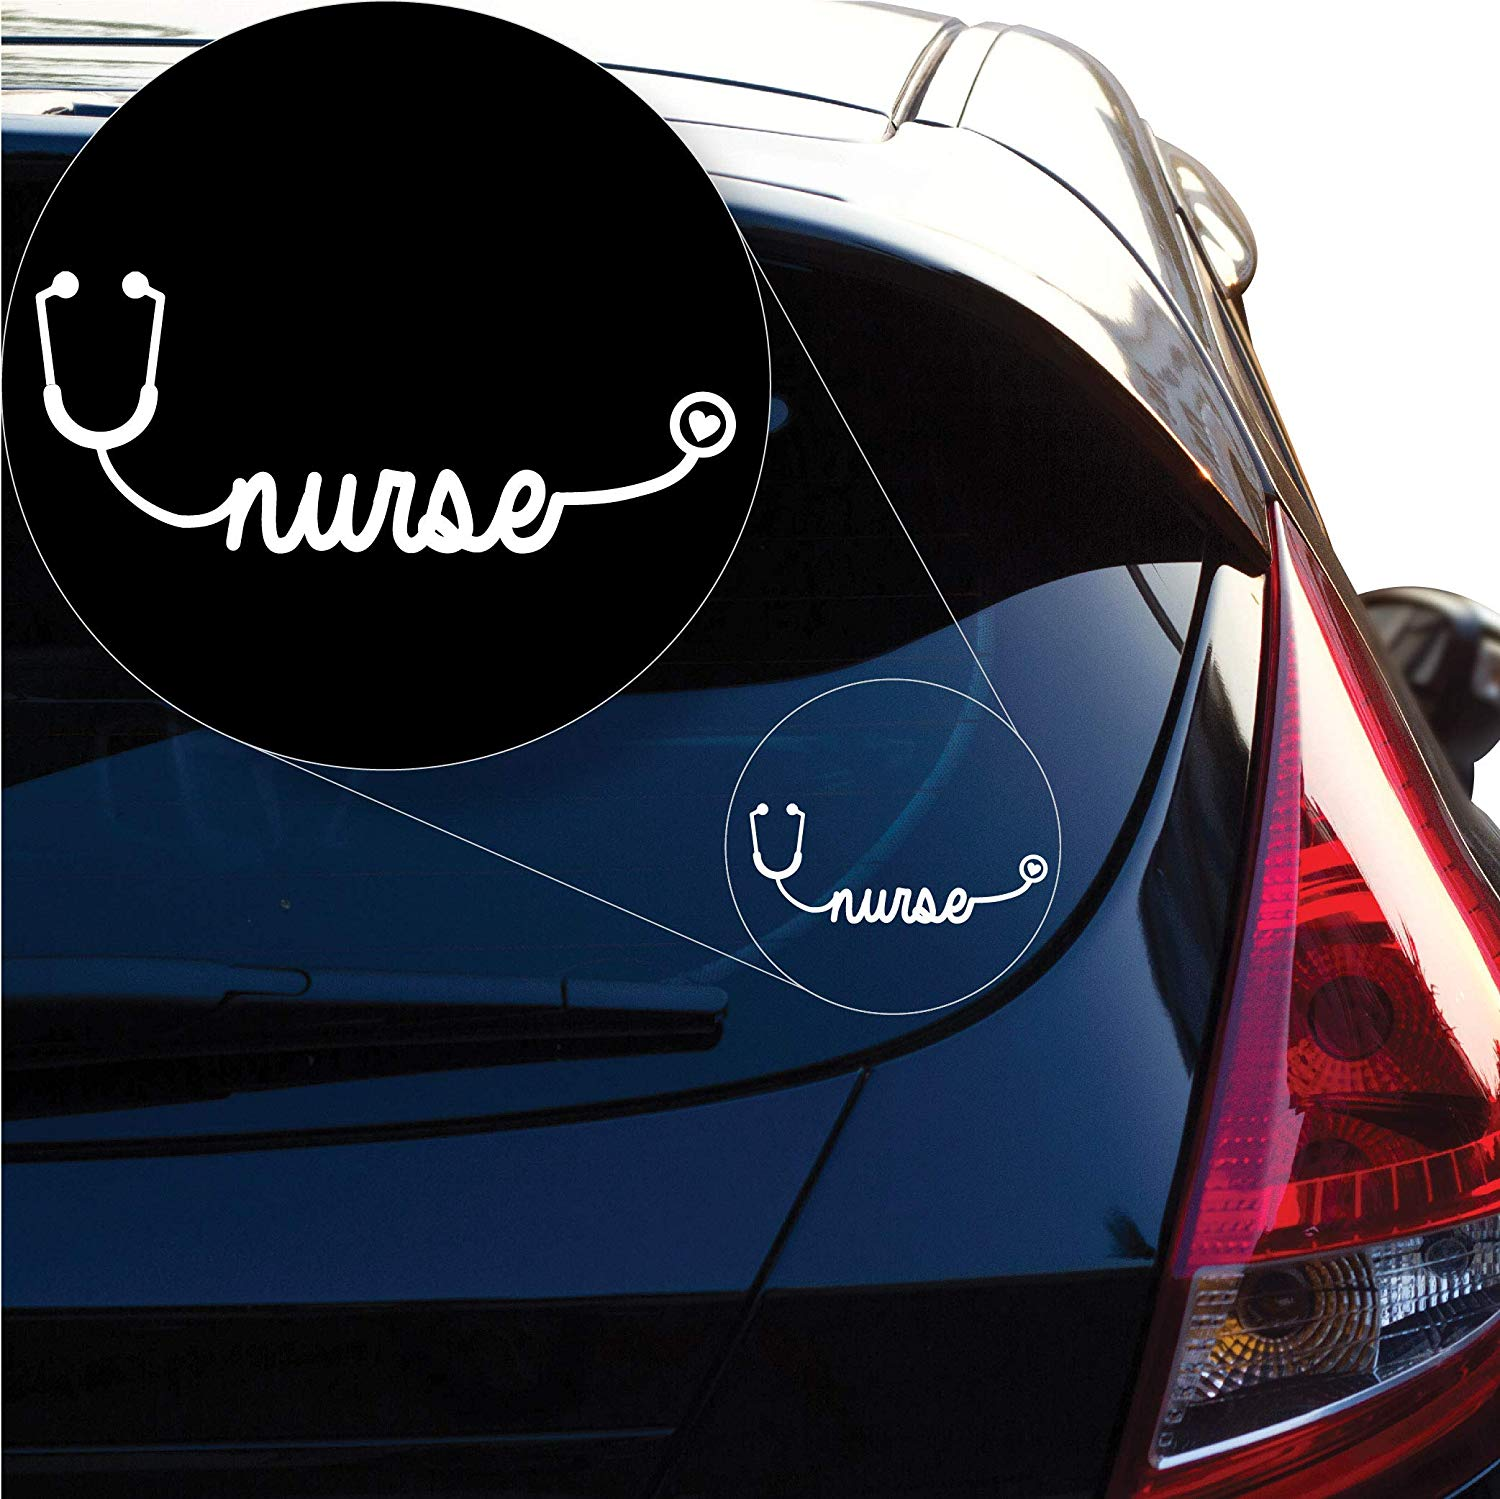 Yoonek Graphics Nurse Stethoscope Decal Sticker Car Window Laptop More 1305 3 quot x 7 4 quot White in Car Stickers from Automobiles amp Motorcycles